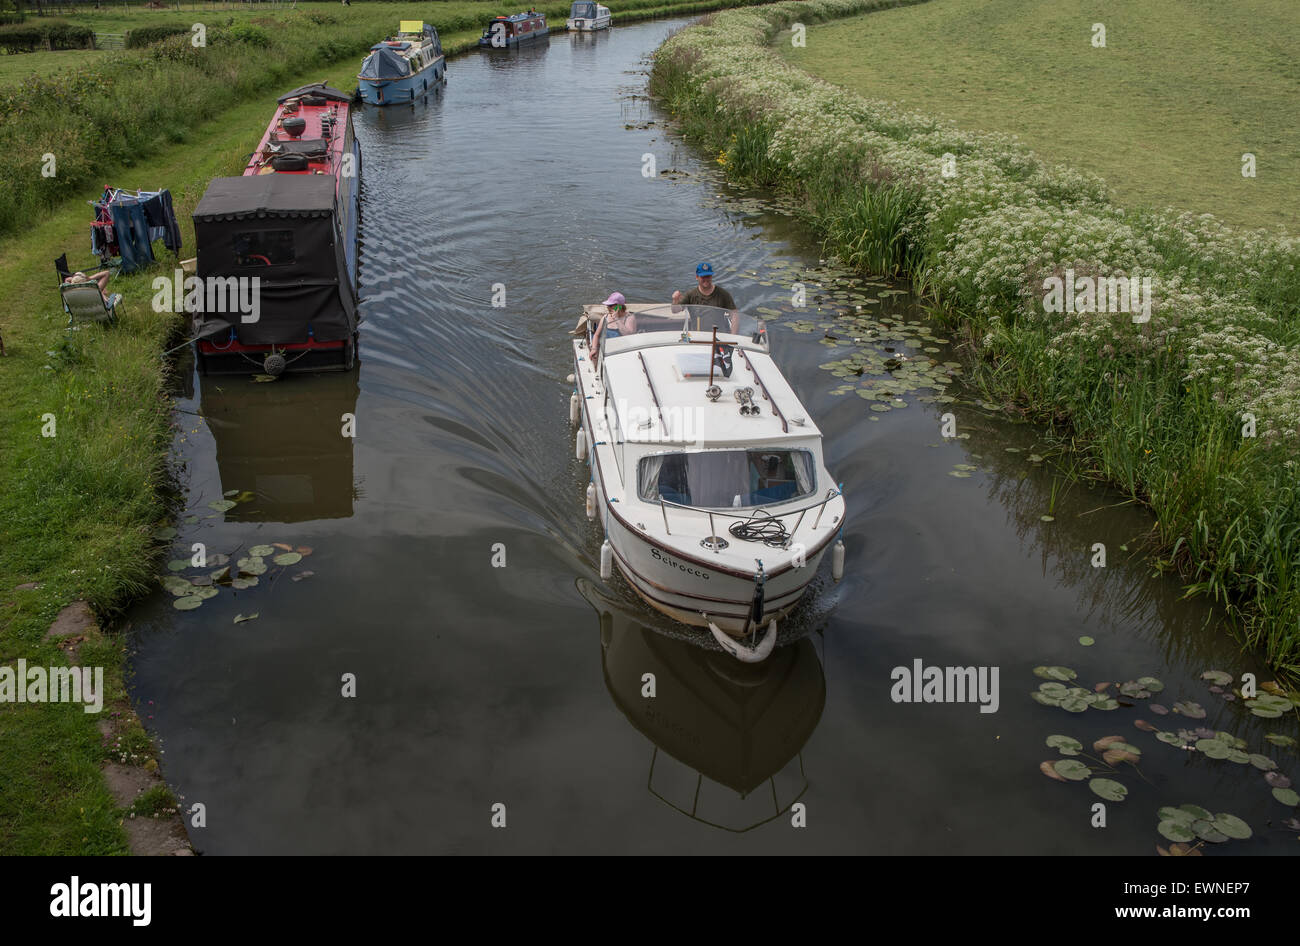 Boating on the Lancaster Canal - Stock Image